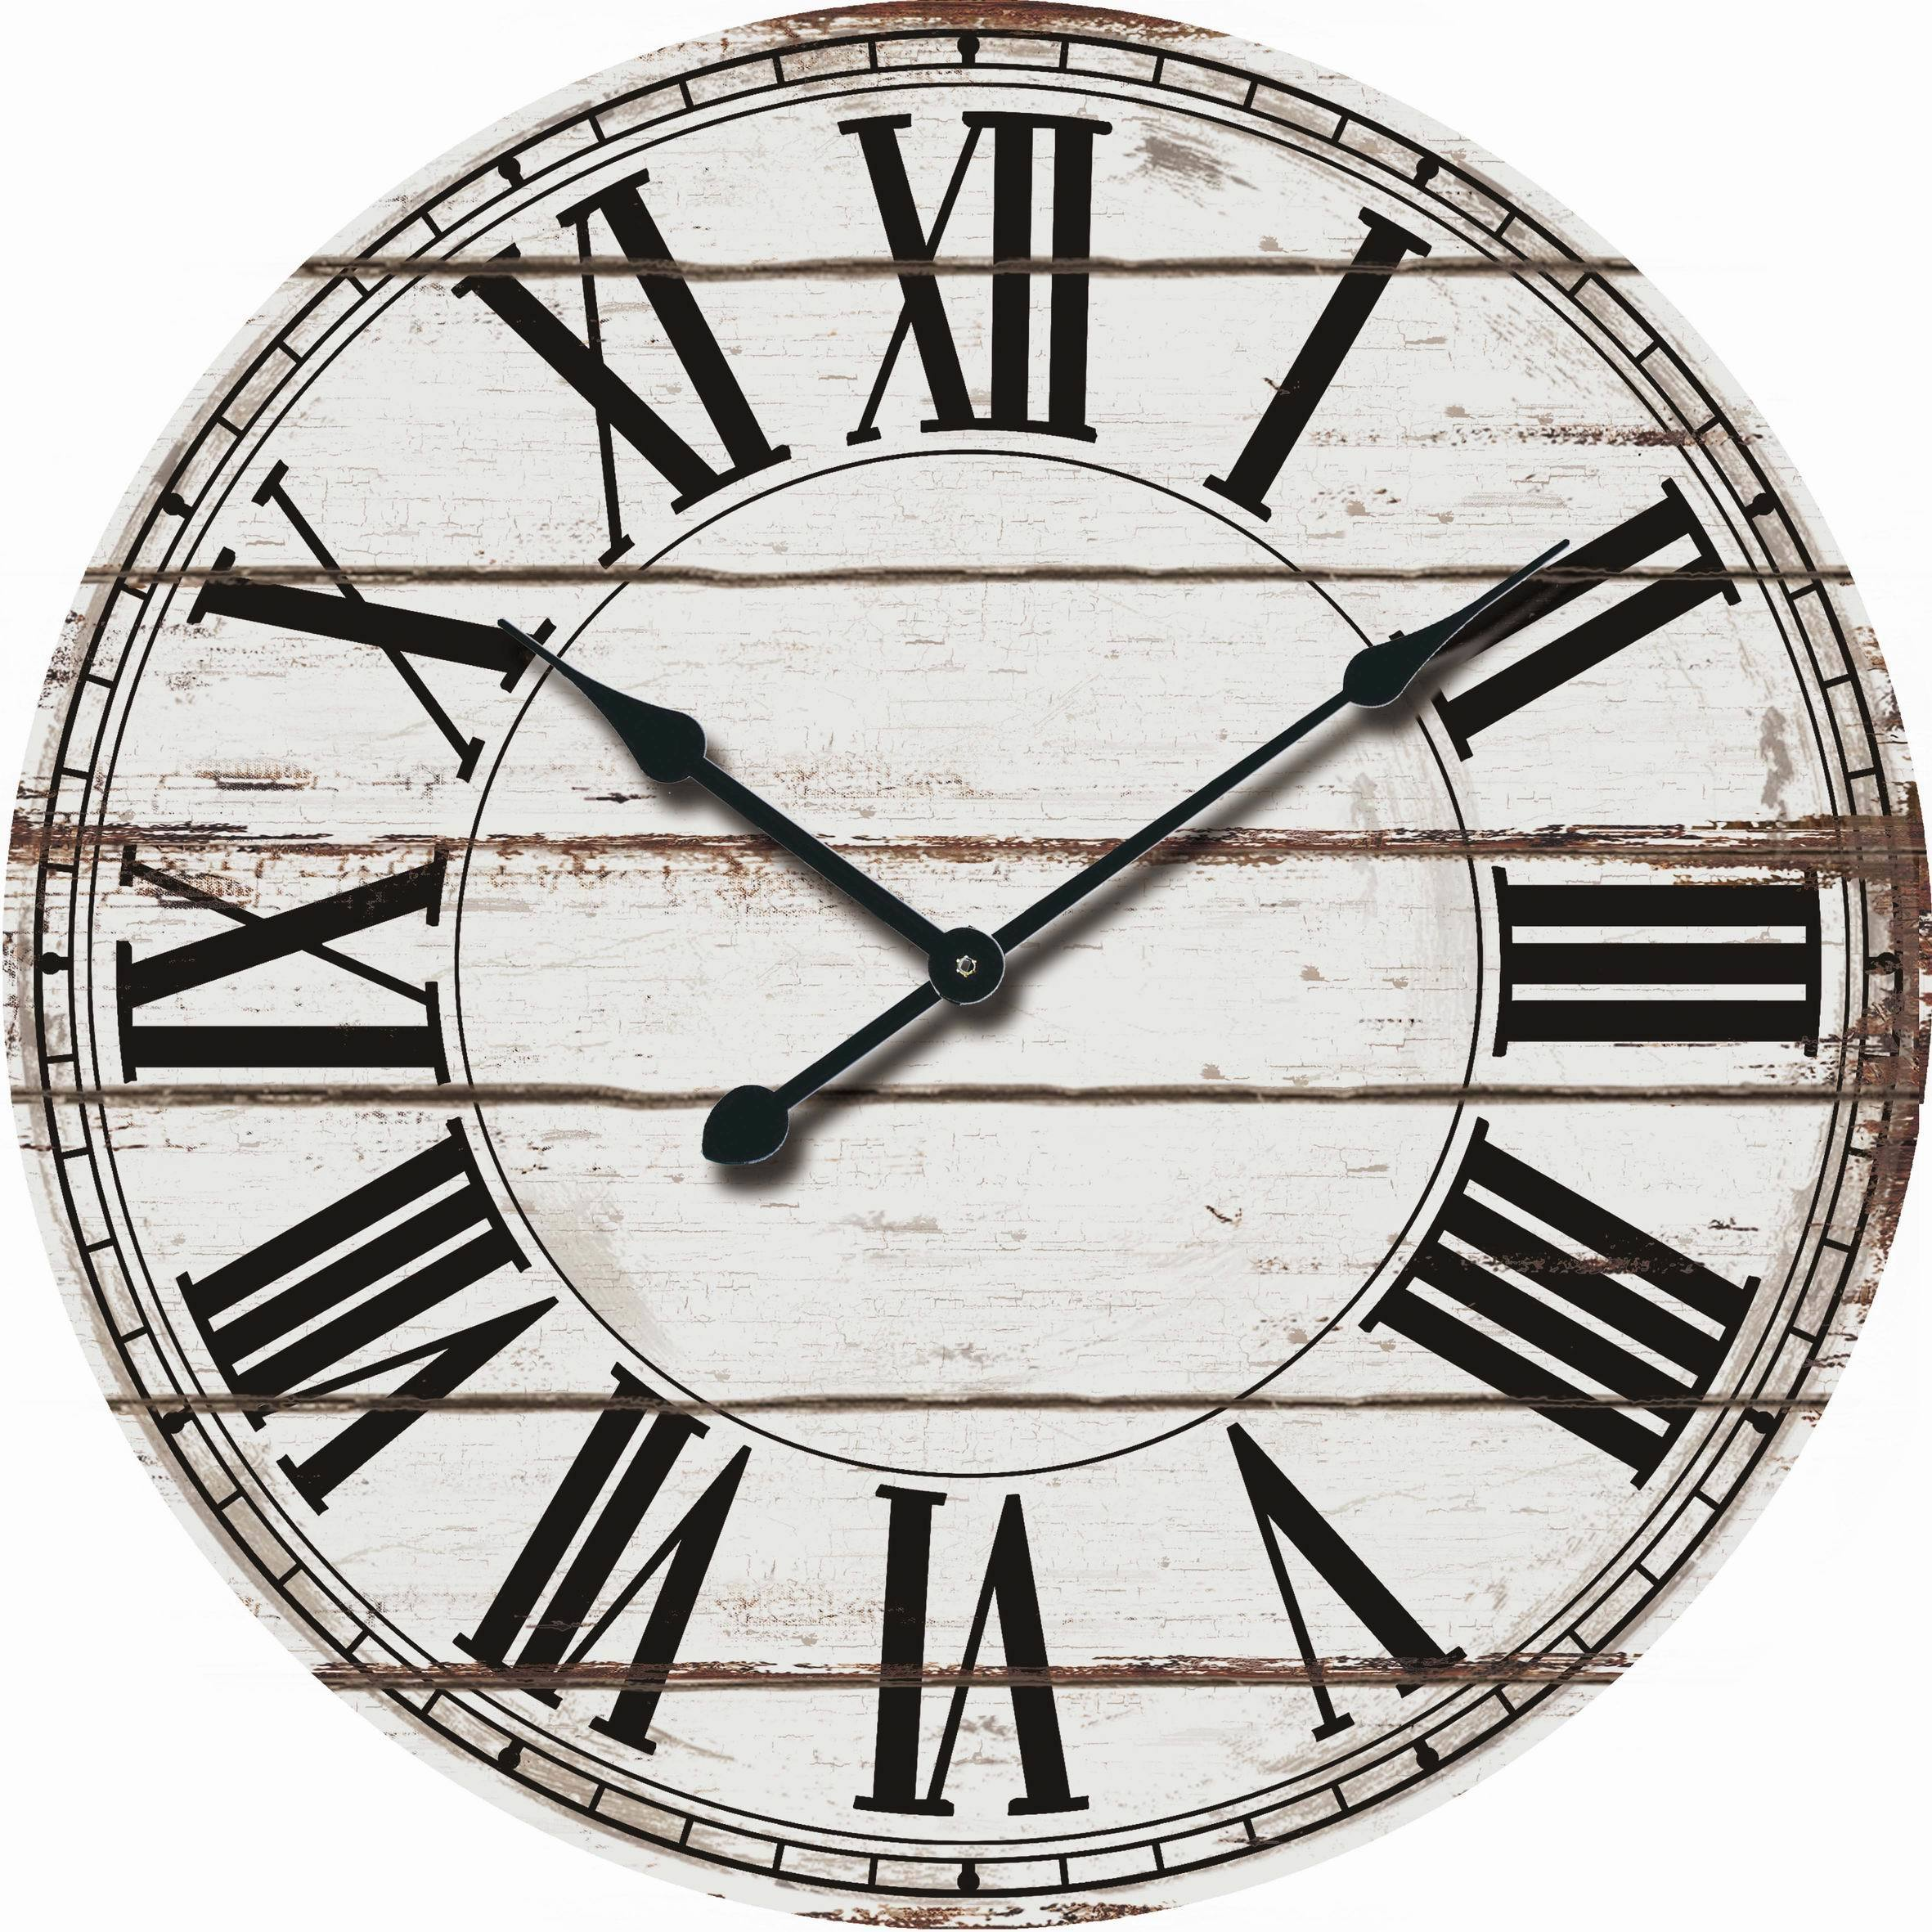 Oval Clock Face Buy Clocks Online At Overstock Our Best Decorative Accessories Deals